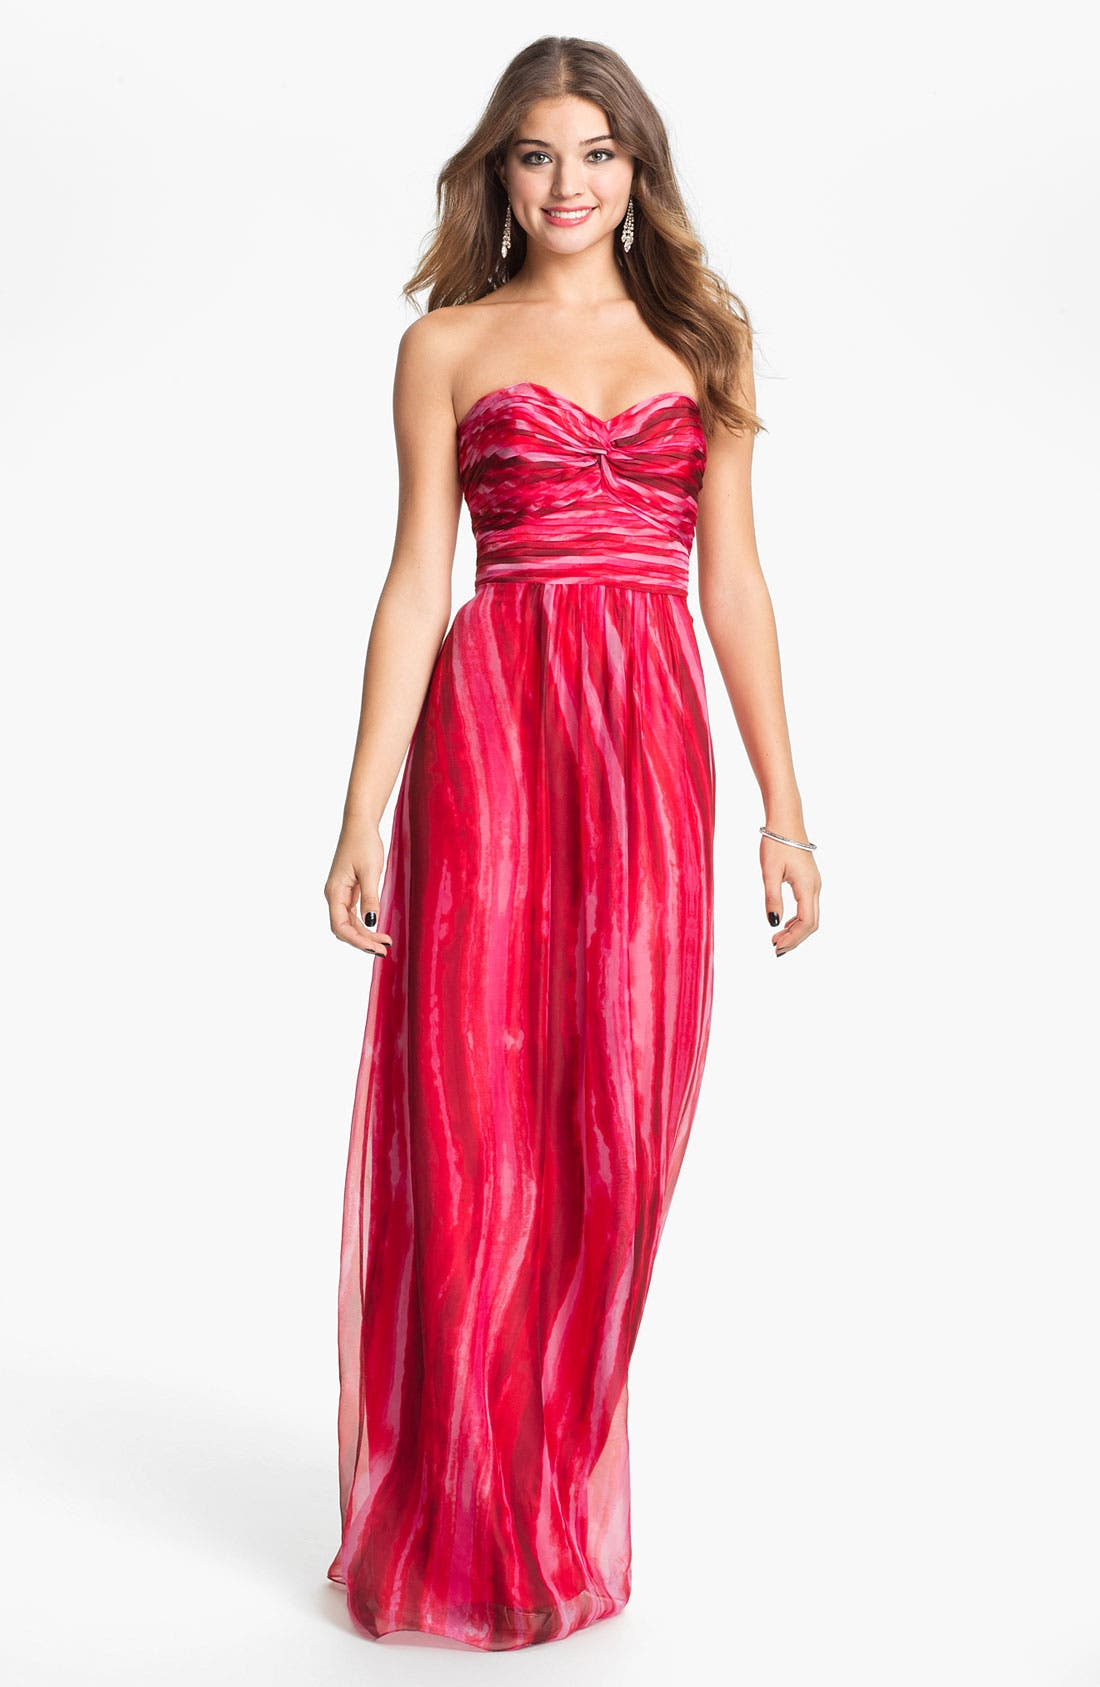 Main Image - Laundry by Shelli Segal Strapless Twist Front Chiffon Gown